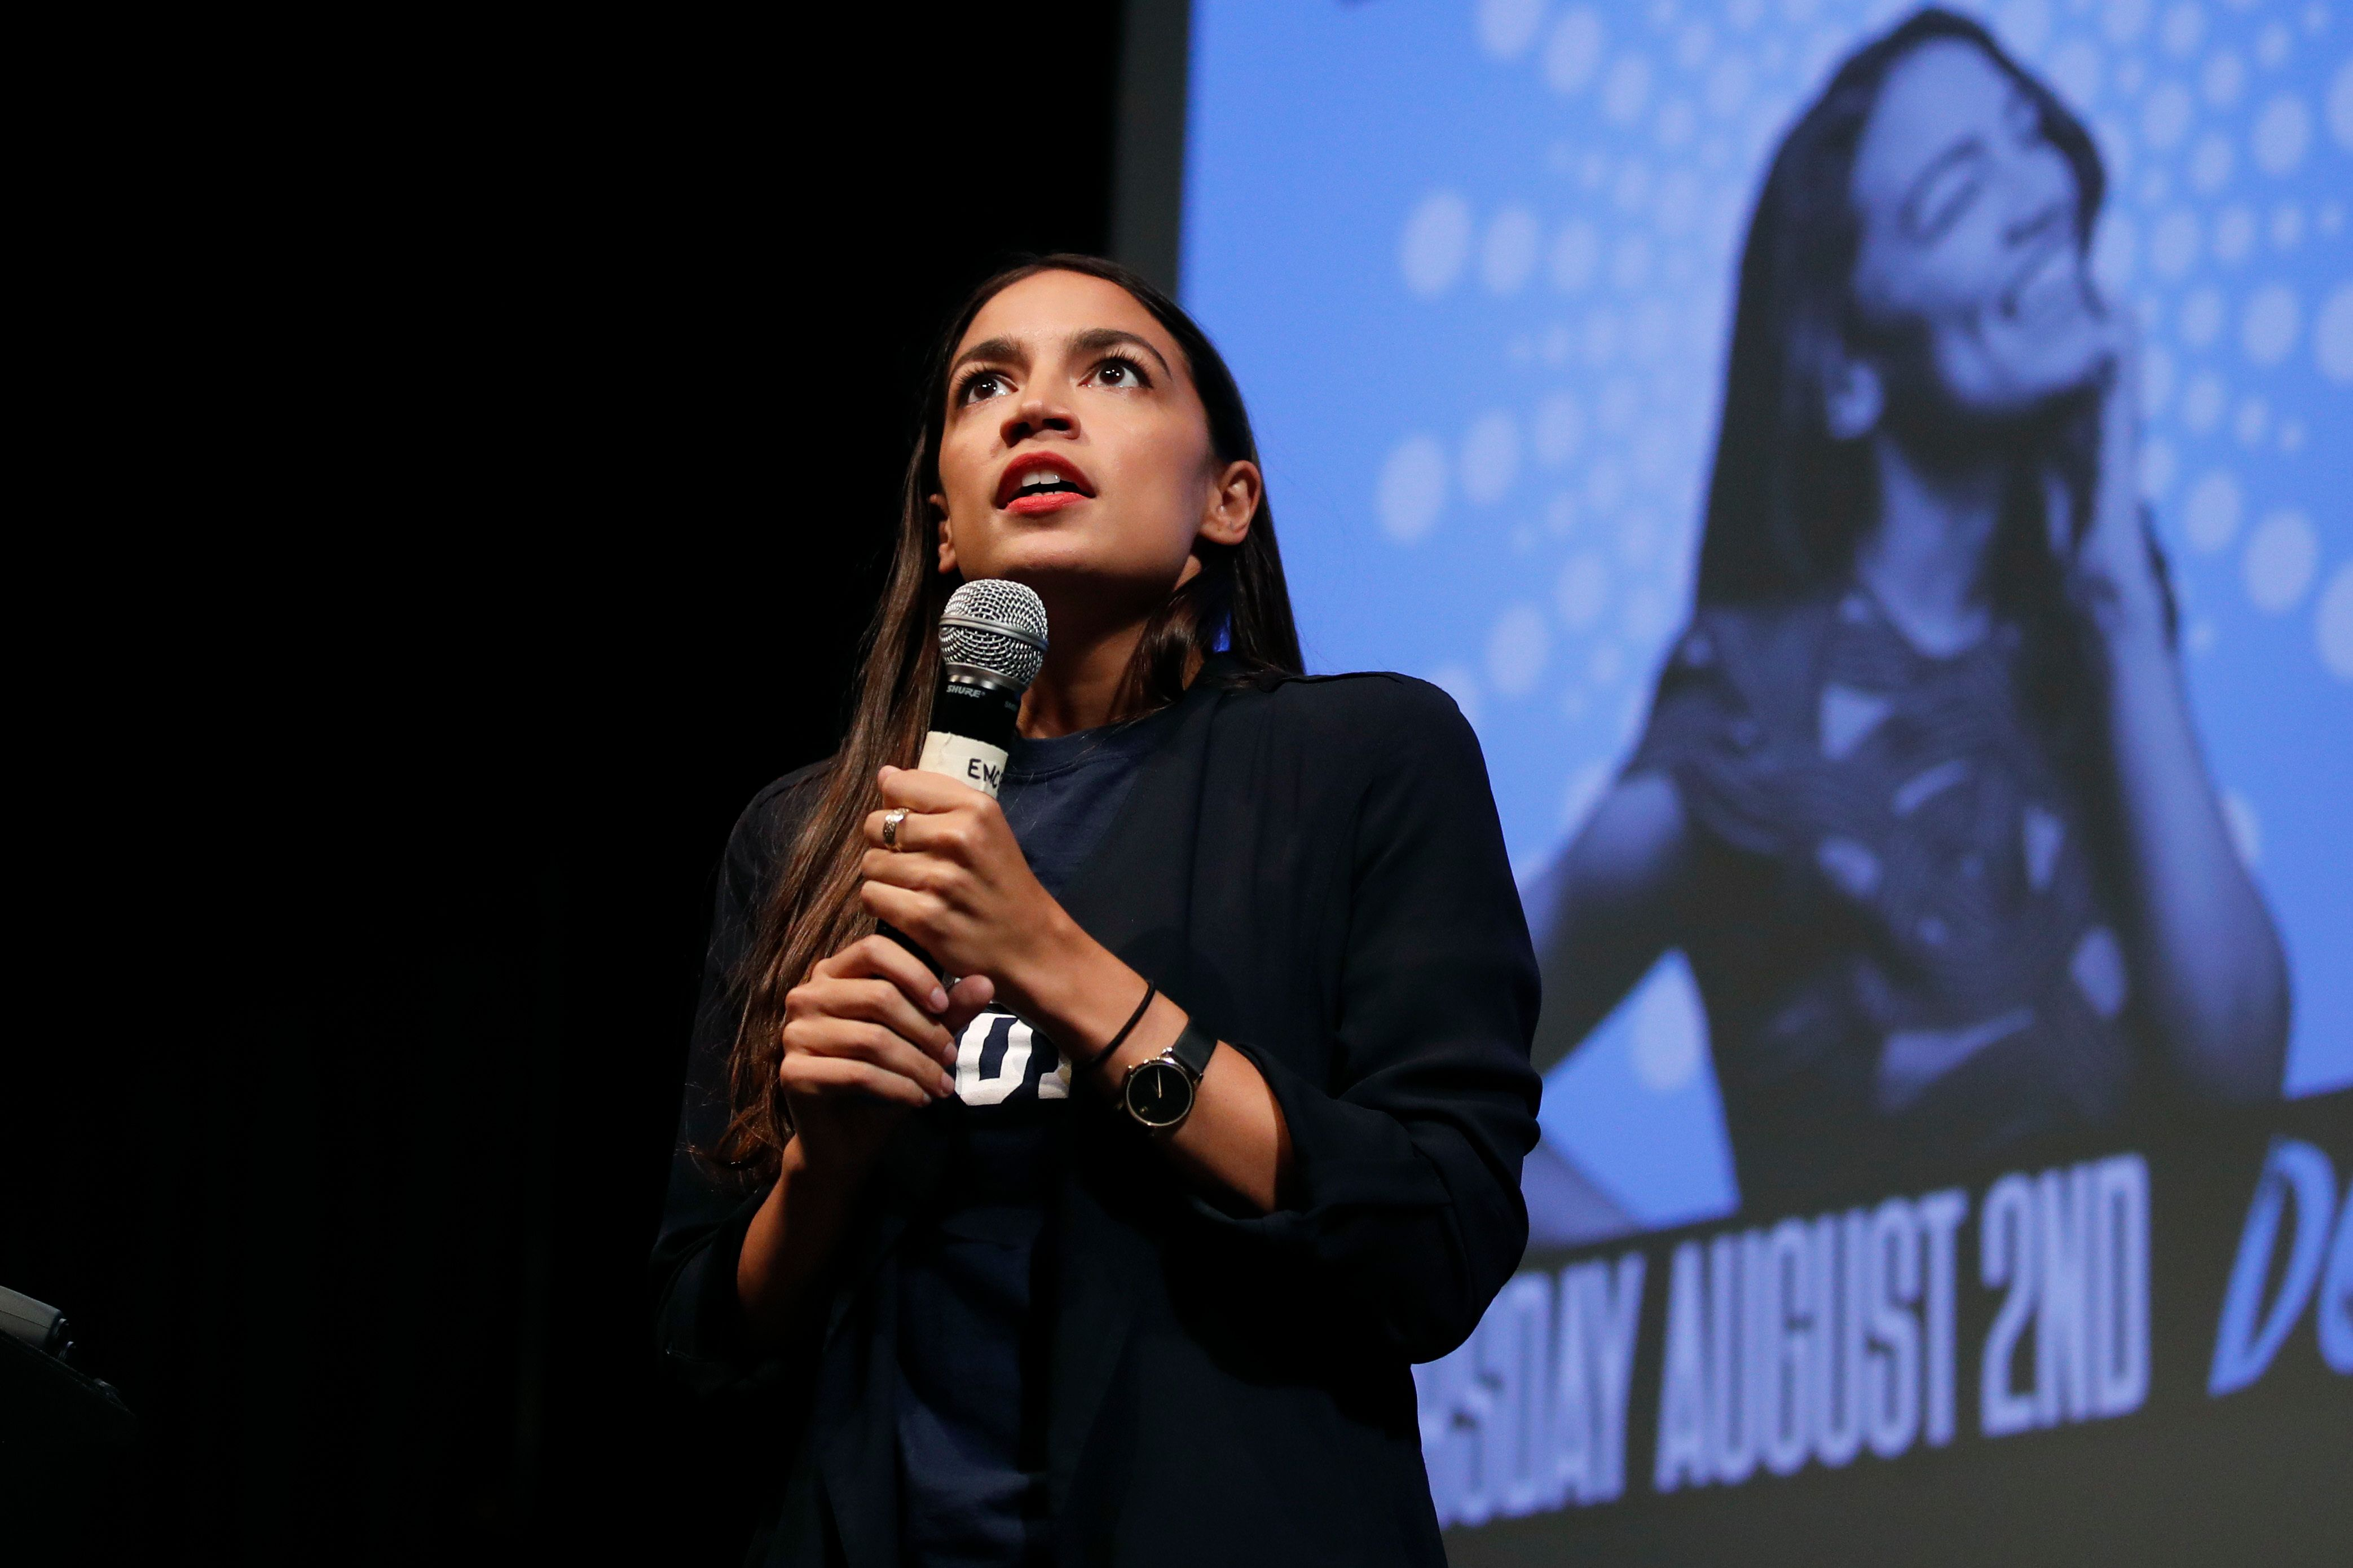 Alexandria Ocasio-Cortez, a winner of a Democratic Congressional primary in New York, addresses supporters at a fundraiser Thursday, Aug. 2, 2018, in Los Angeles. (AP Photo/Jae C. Hong)